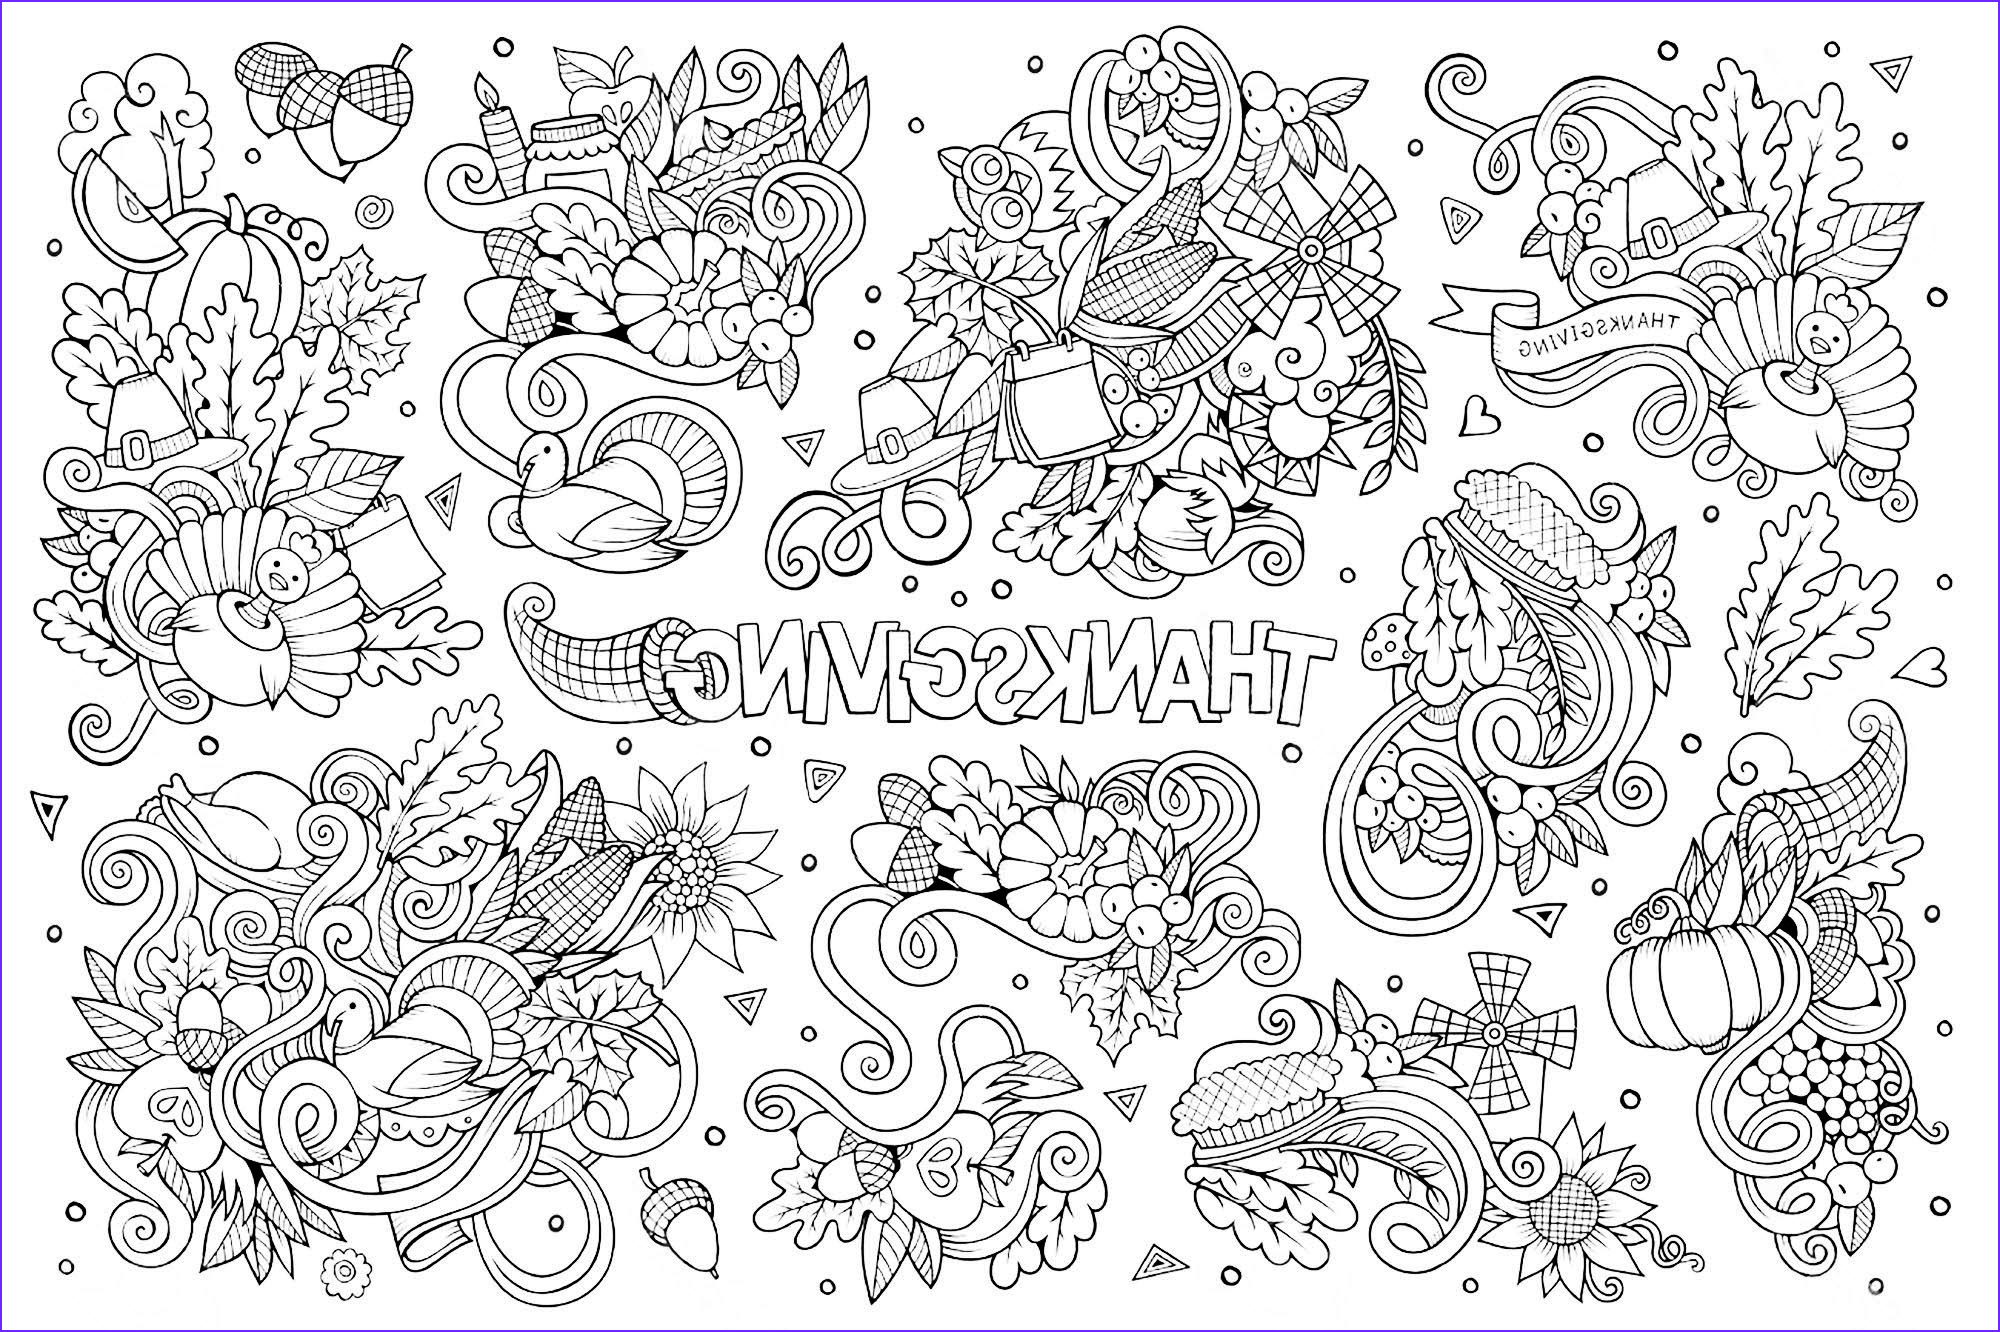 Coloring Images for Adults Best Of Collection Free Thanksgiving Coloring Pages for Adults & Kids